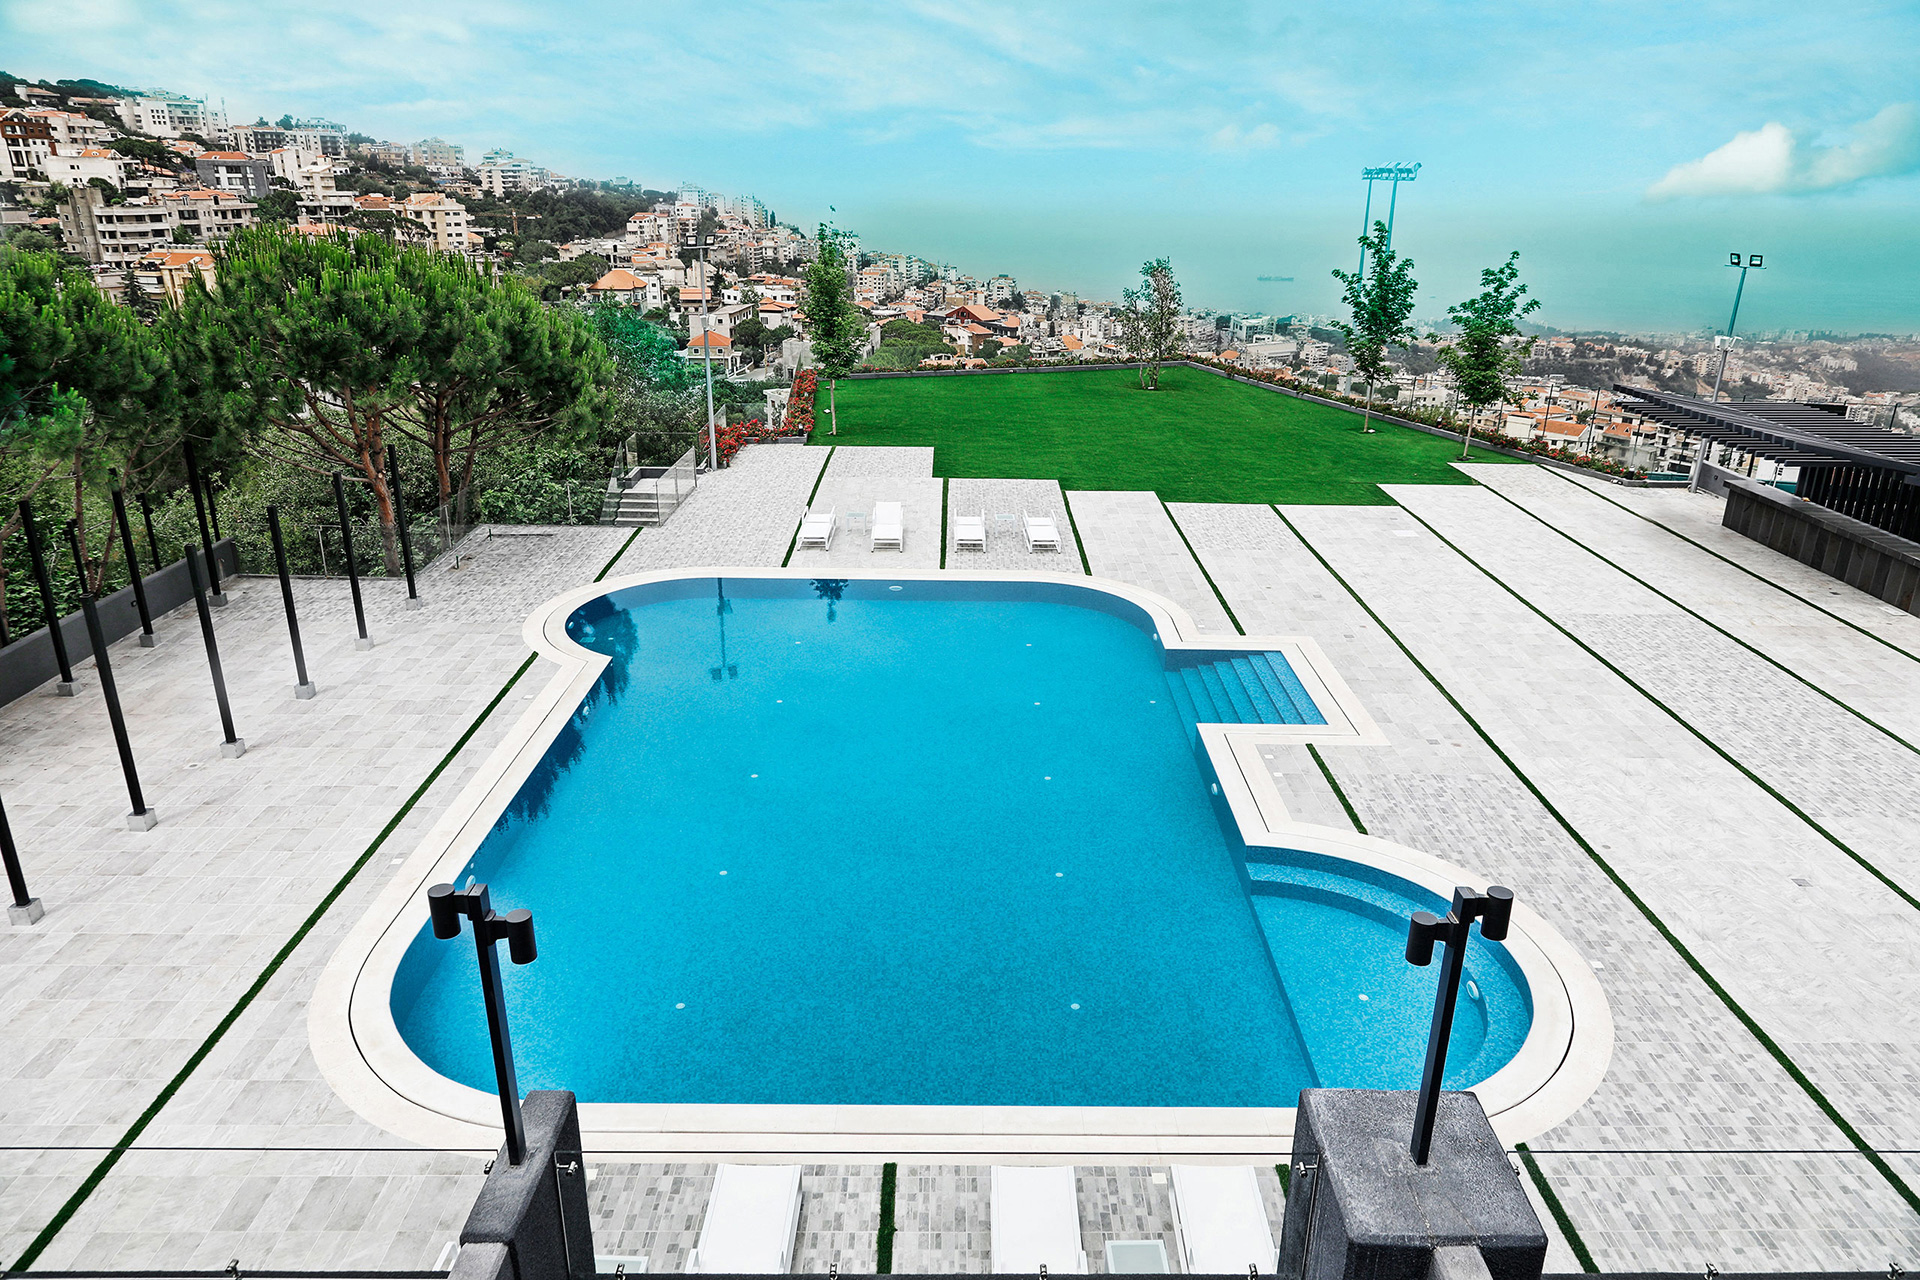 Le-Pave-Hotel-Lebanon-Beirut-Outside-Pool